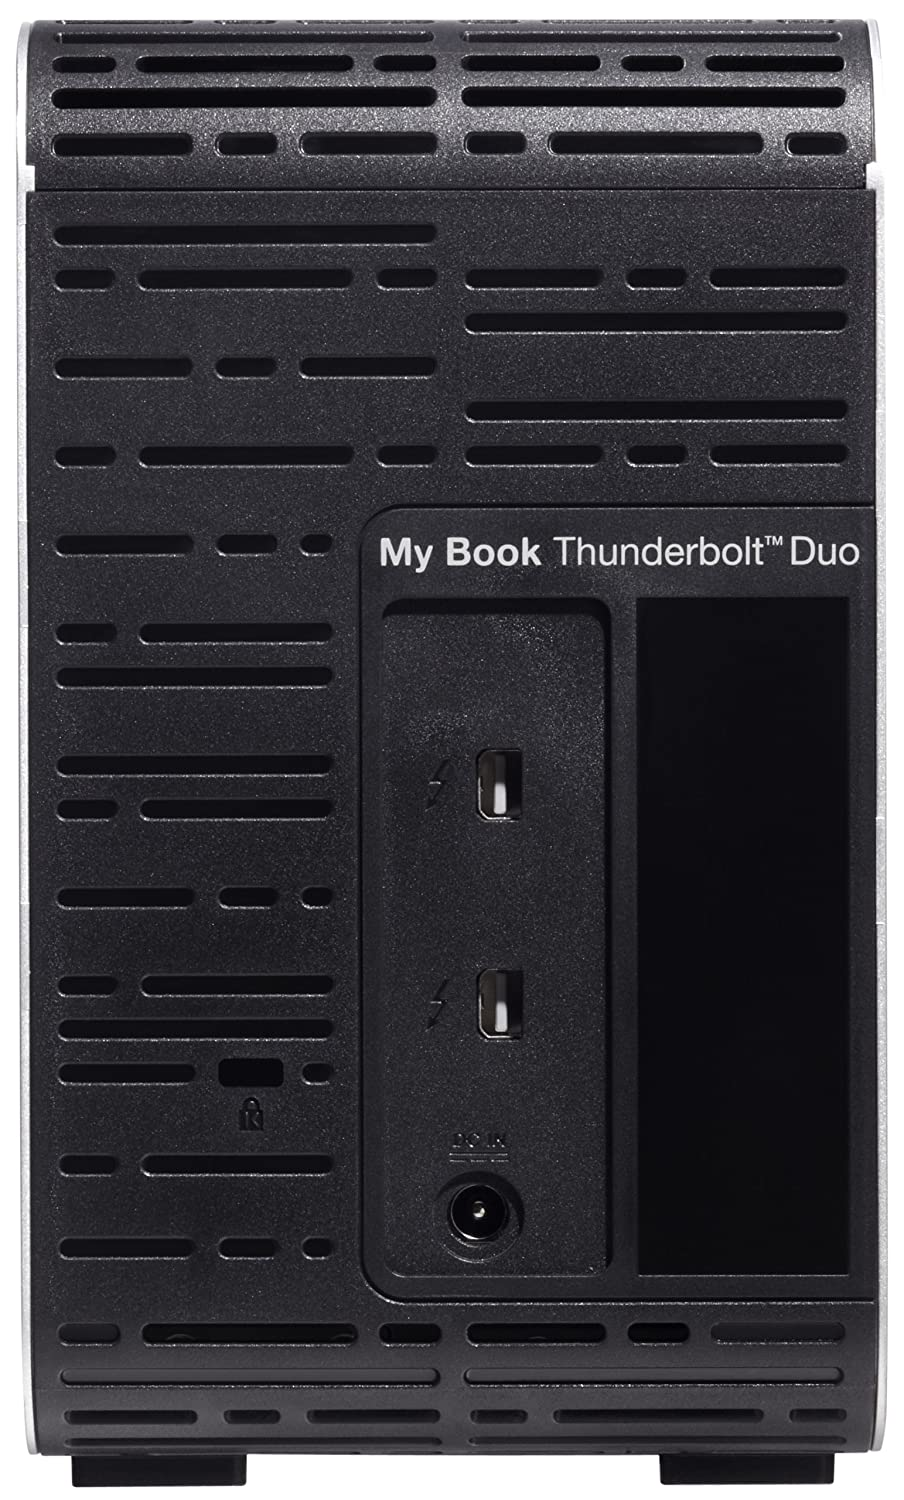 Wd My Book Thunderbolt Duo 6tb External Dual Hard Drive 4tb Hd Hdd Desktop Hardisk Eksternal 35 Storage With Raid Computers Accessories